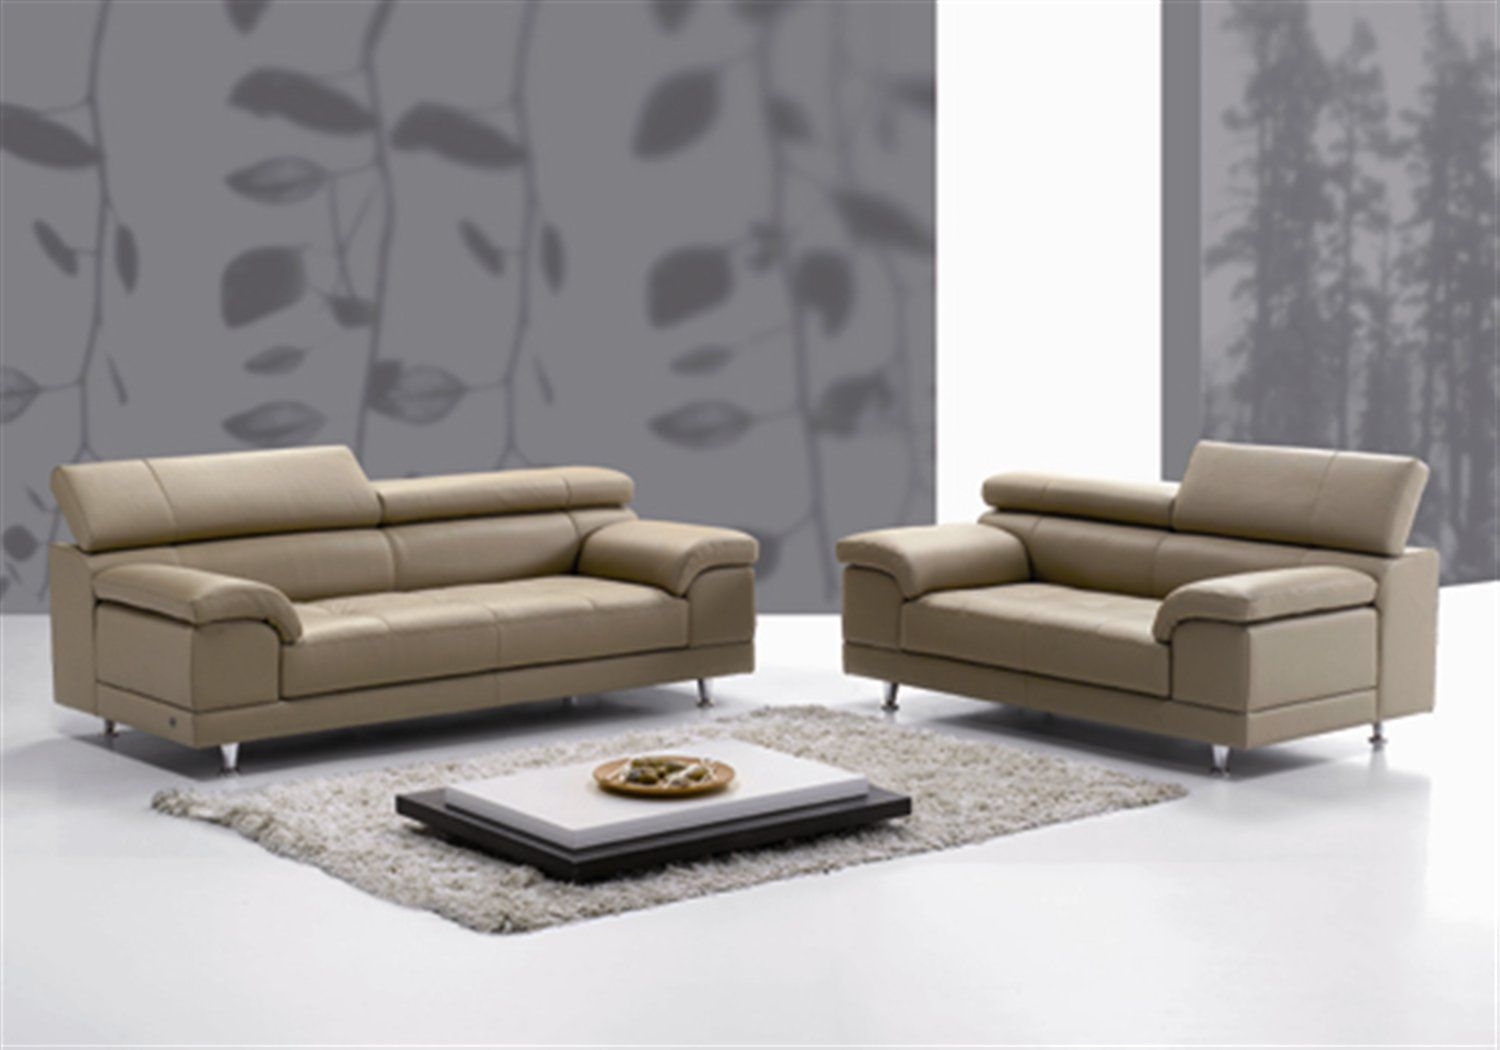 Italian Leather Sofas Premium Style For Your Place Contemporary